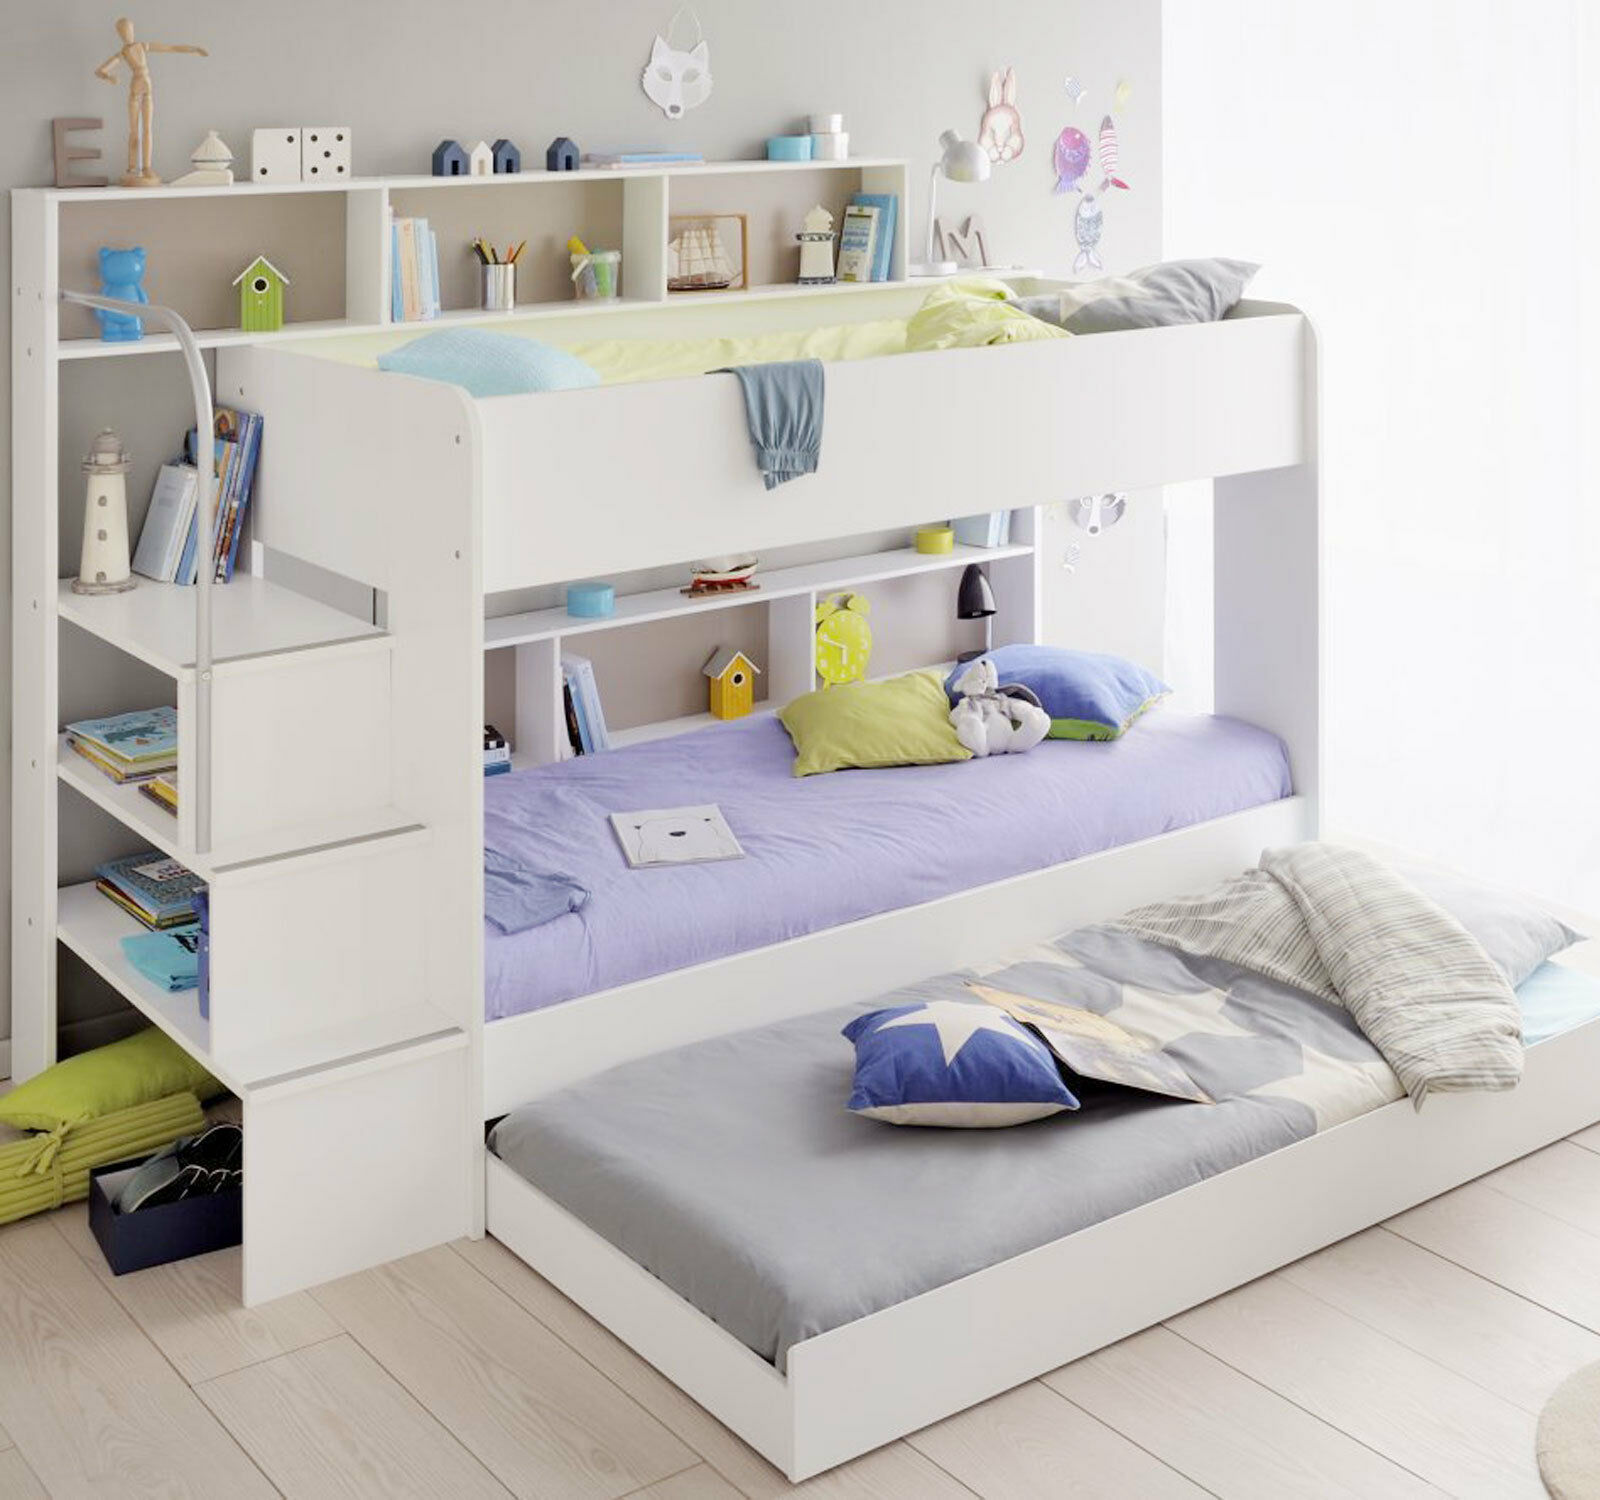 kinderbett etagenbett kombi bett weiss hochbett spielbett stockbett 90x200 bett ebay. Black Bedroom Furniture Sets. Home Design Ideas